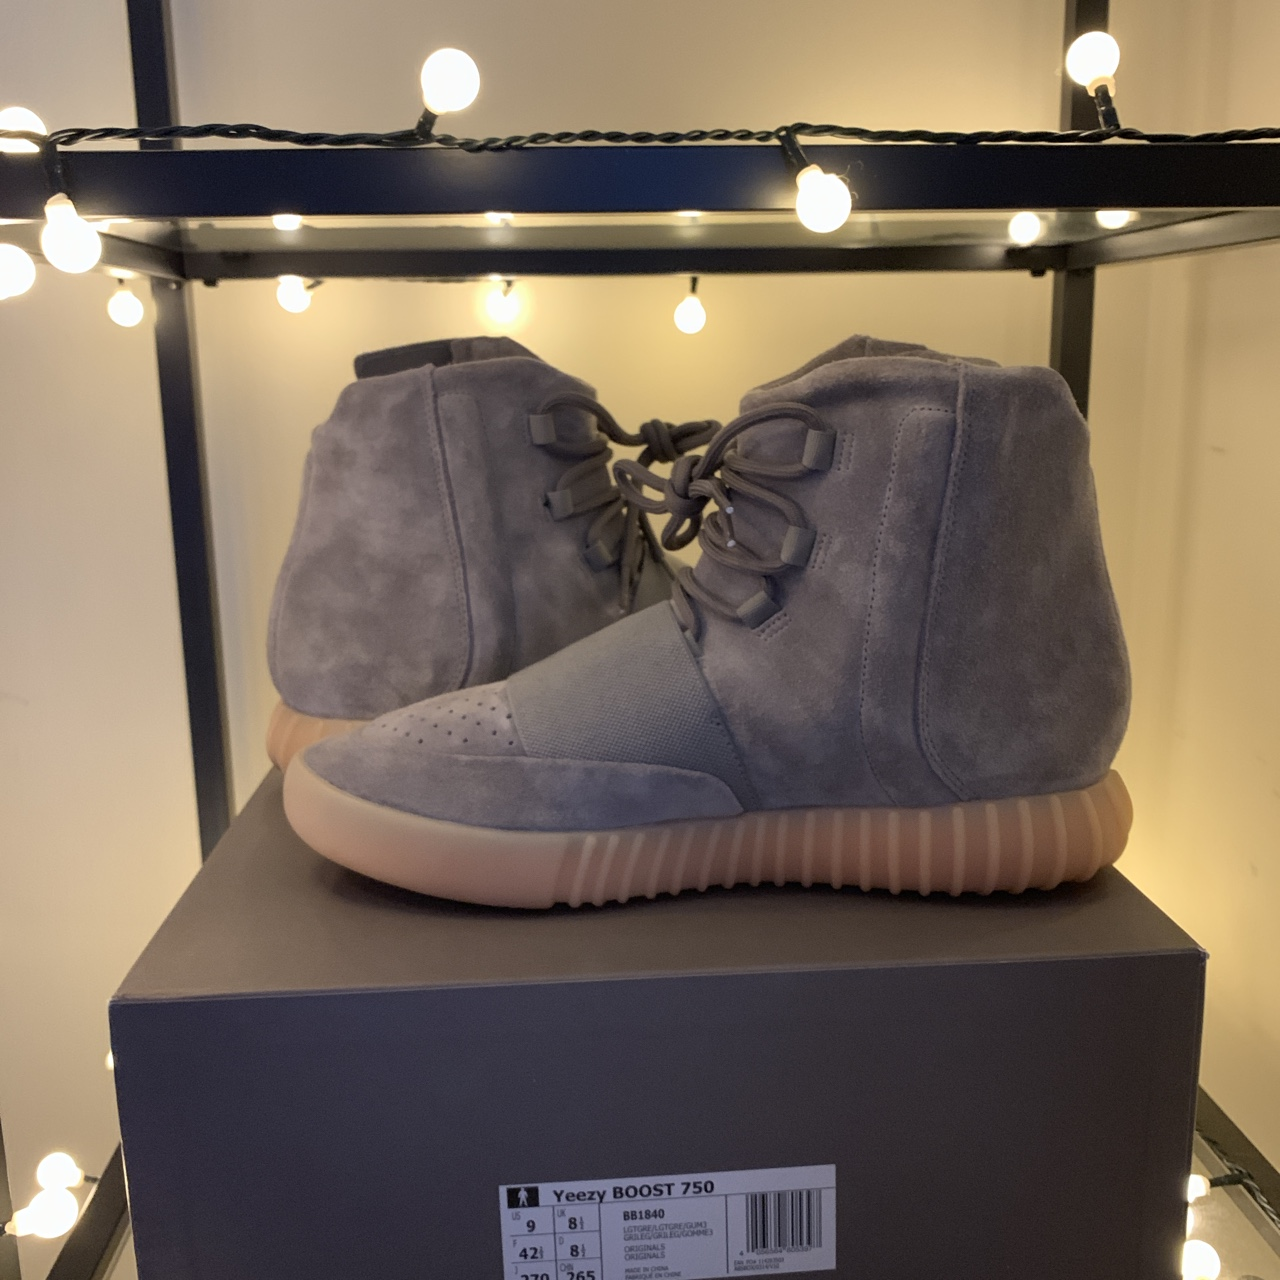 Fastest Frog Play Championships — Yeezy 750 Grey Gum Retail